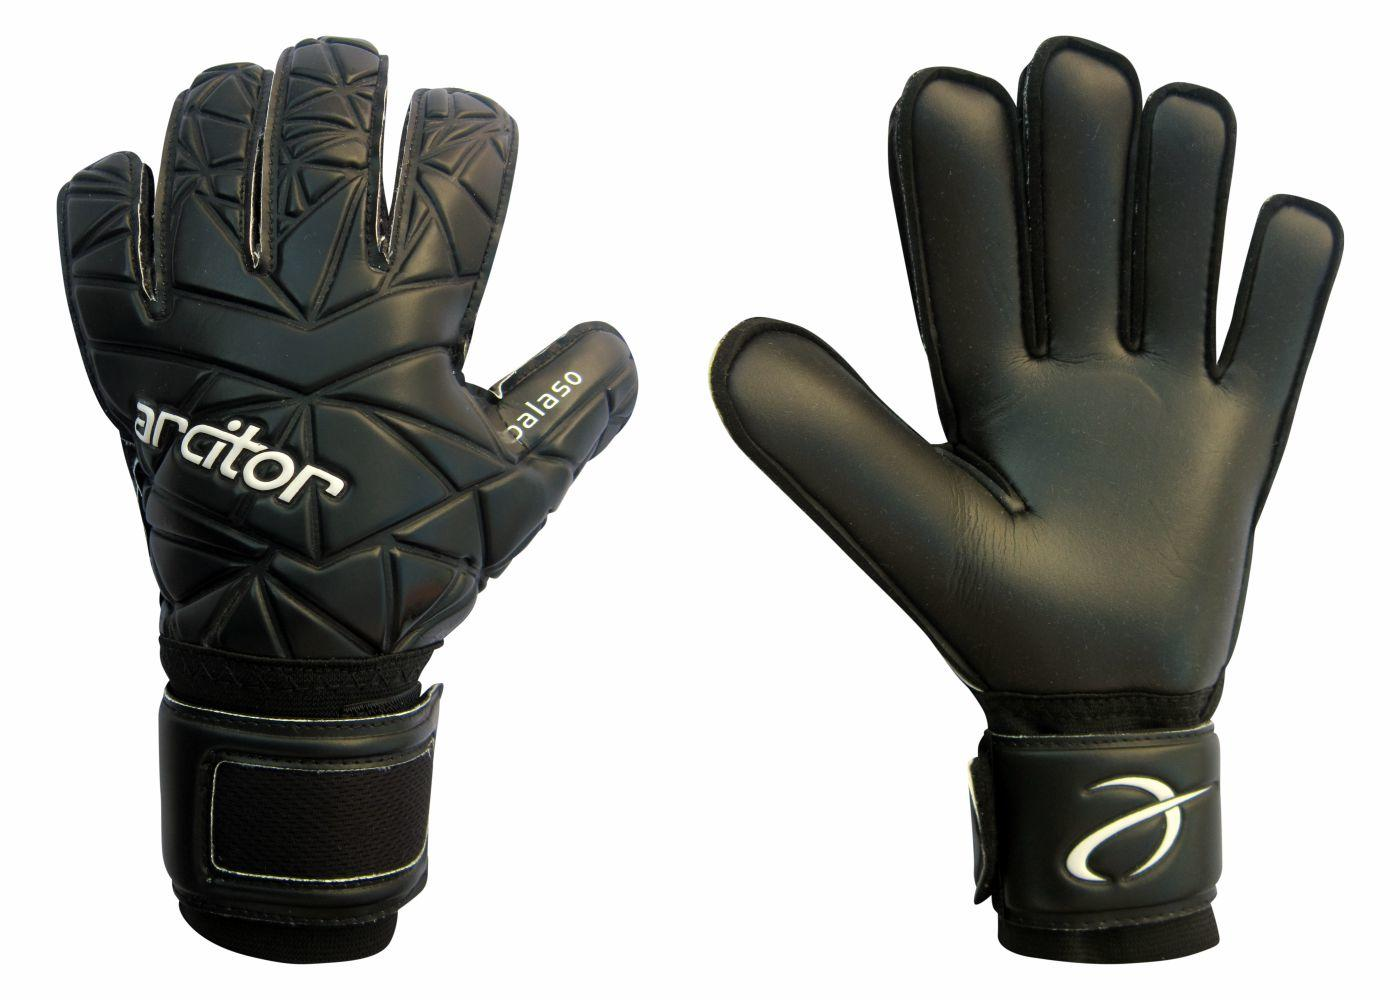 Palaso Black Palm GK Gloves